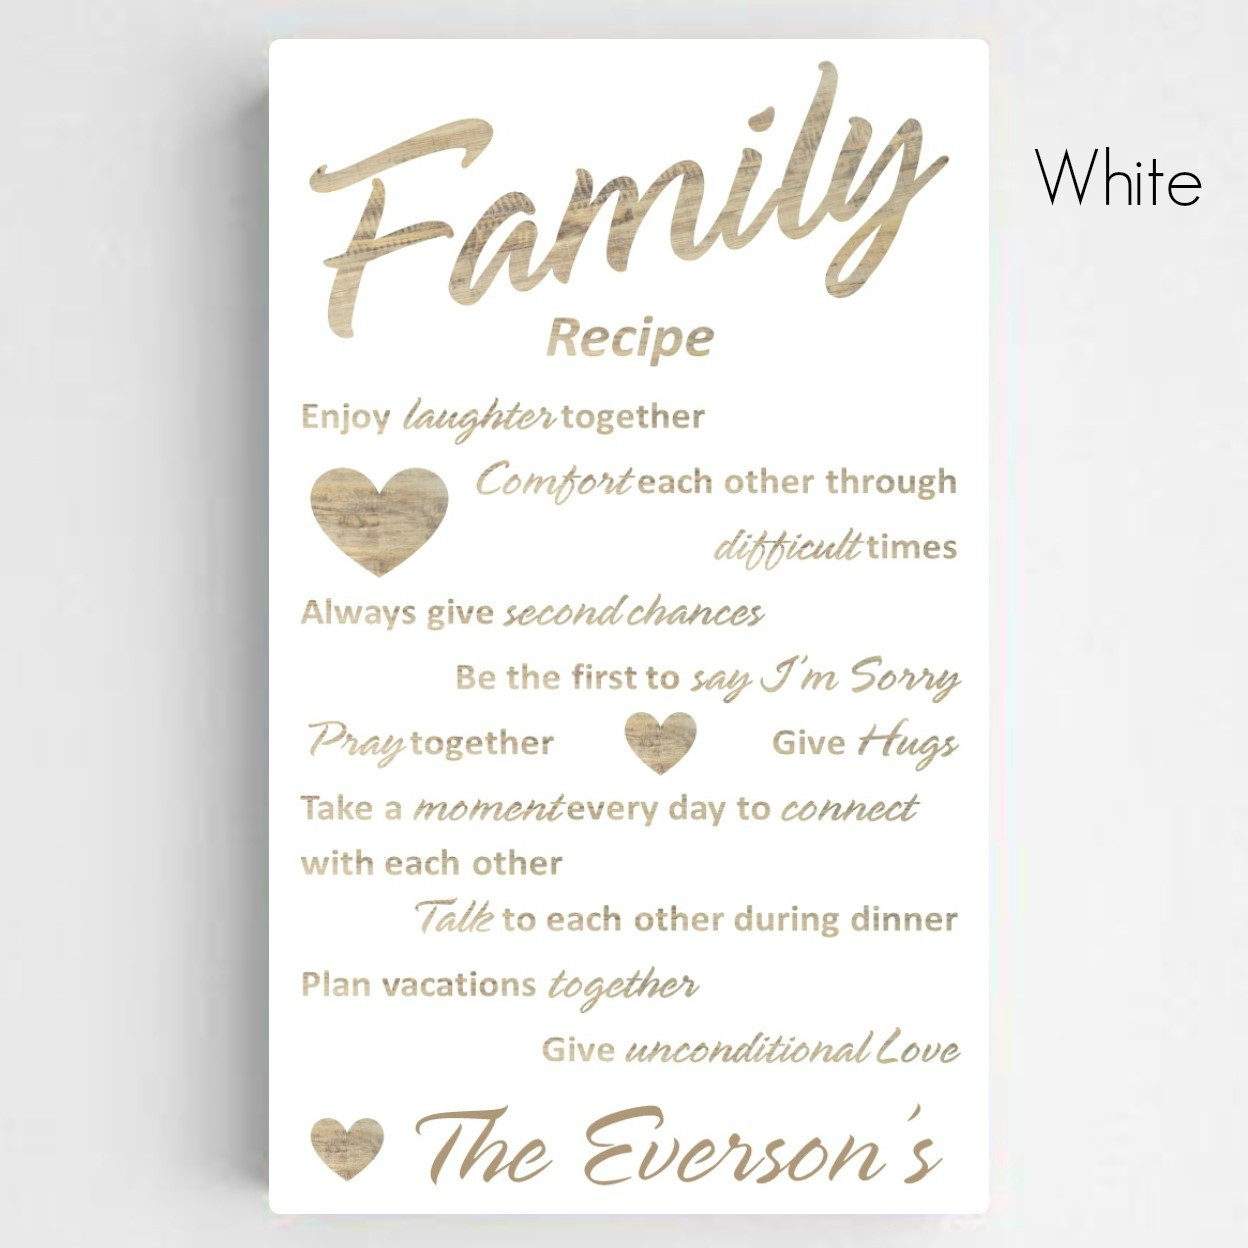 Unique Wedding Anniversary Gifts Australia : Home Personalized Personalized Family Recipe Canvas